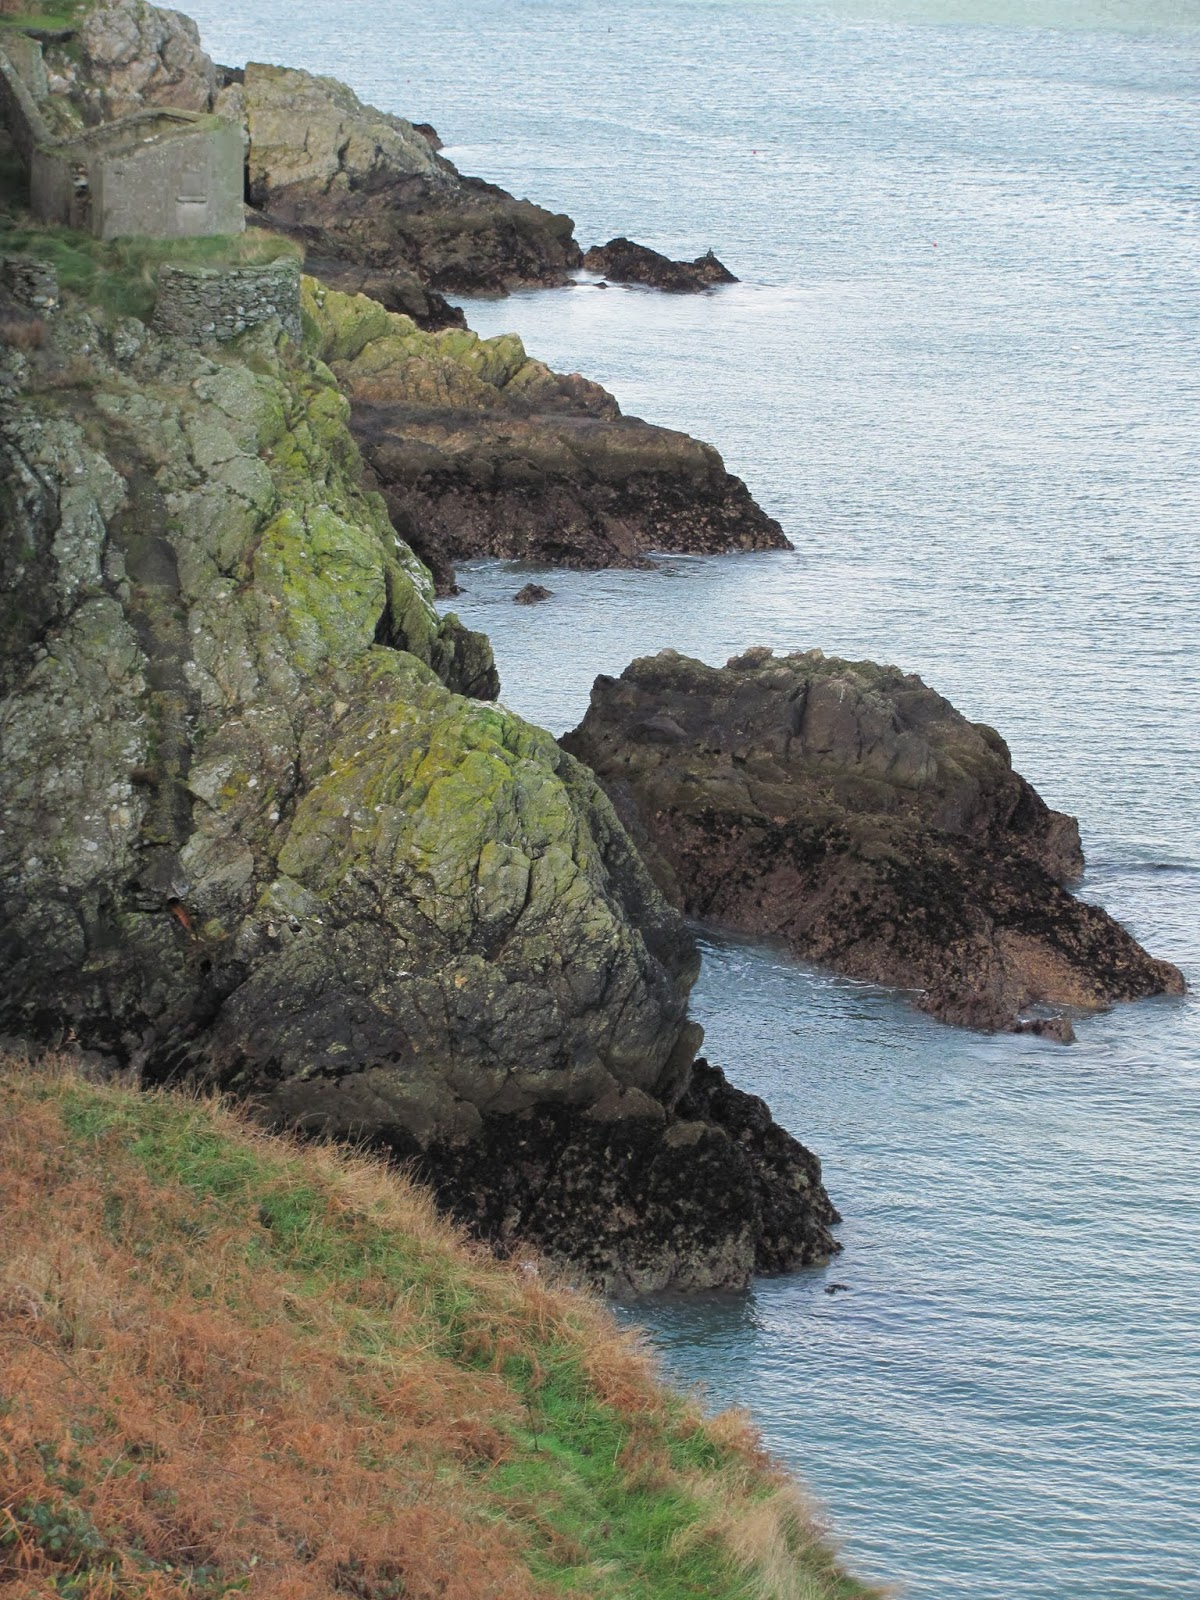 Craggy Cliffs in Howth, Co. Dublin, Ireland